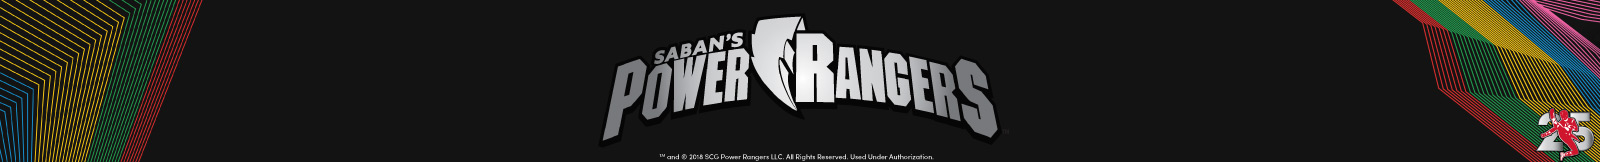 Saban's Power Rangers Category Banner